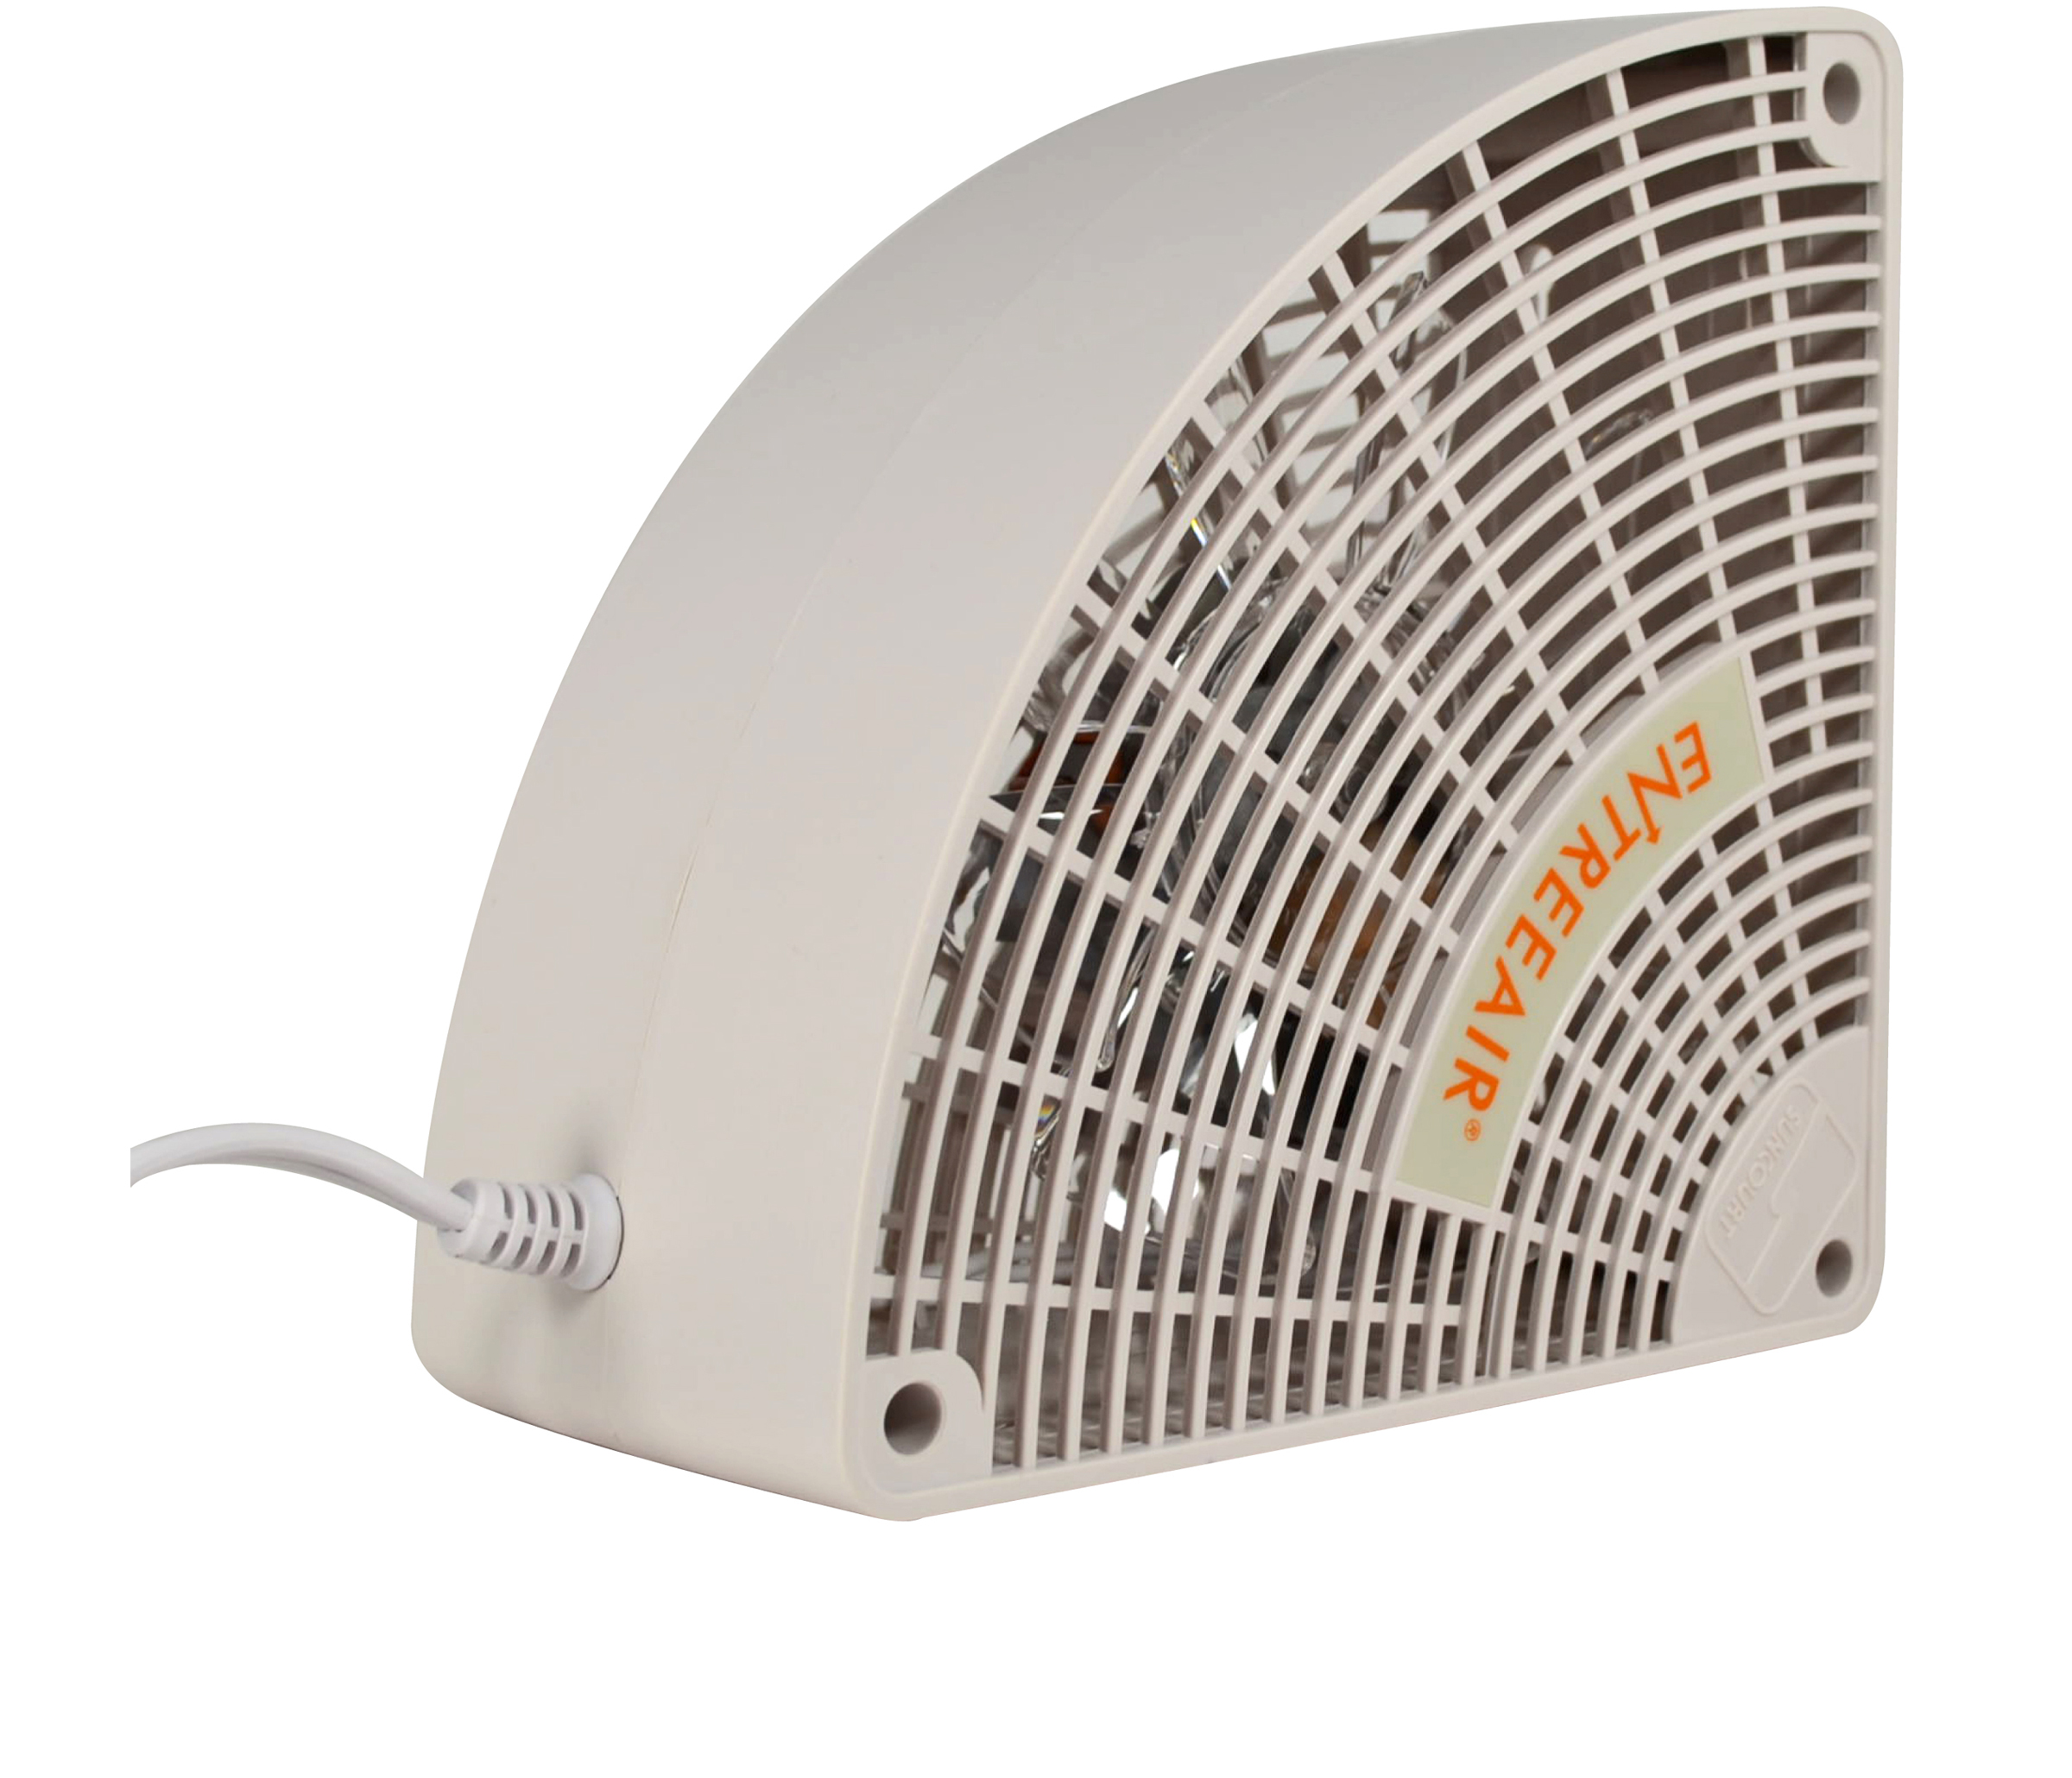 entreeair door frame fan rr100